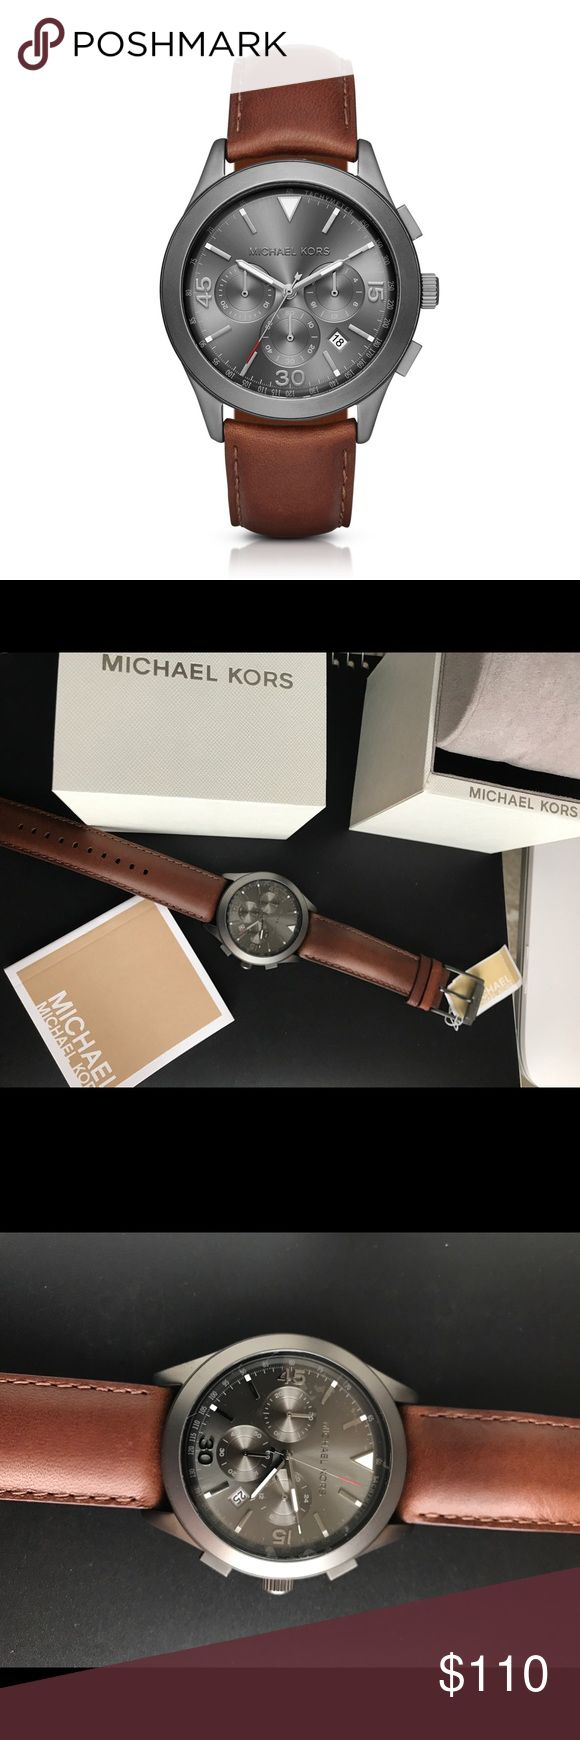 Michael Kors men chronograph watch Brand new with tags MK men's watch. Genuine Leather strap and gunmetal dial. Michael Kors Accessories Watches